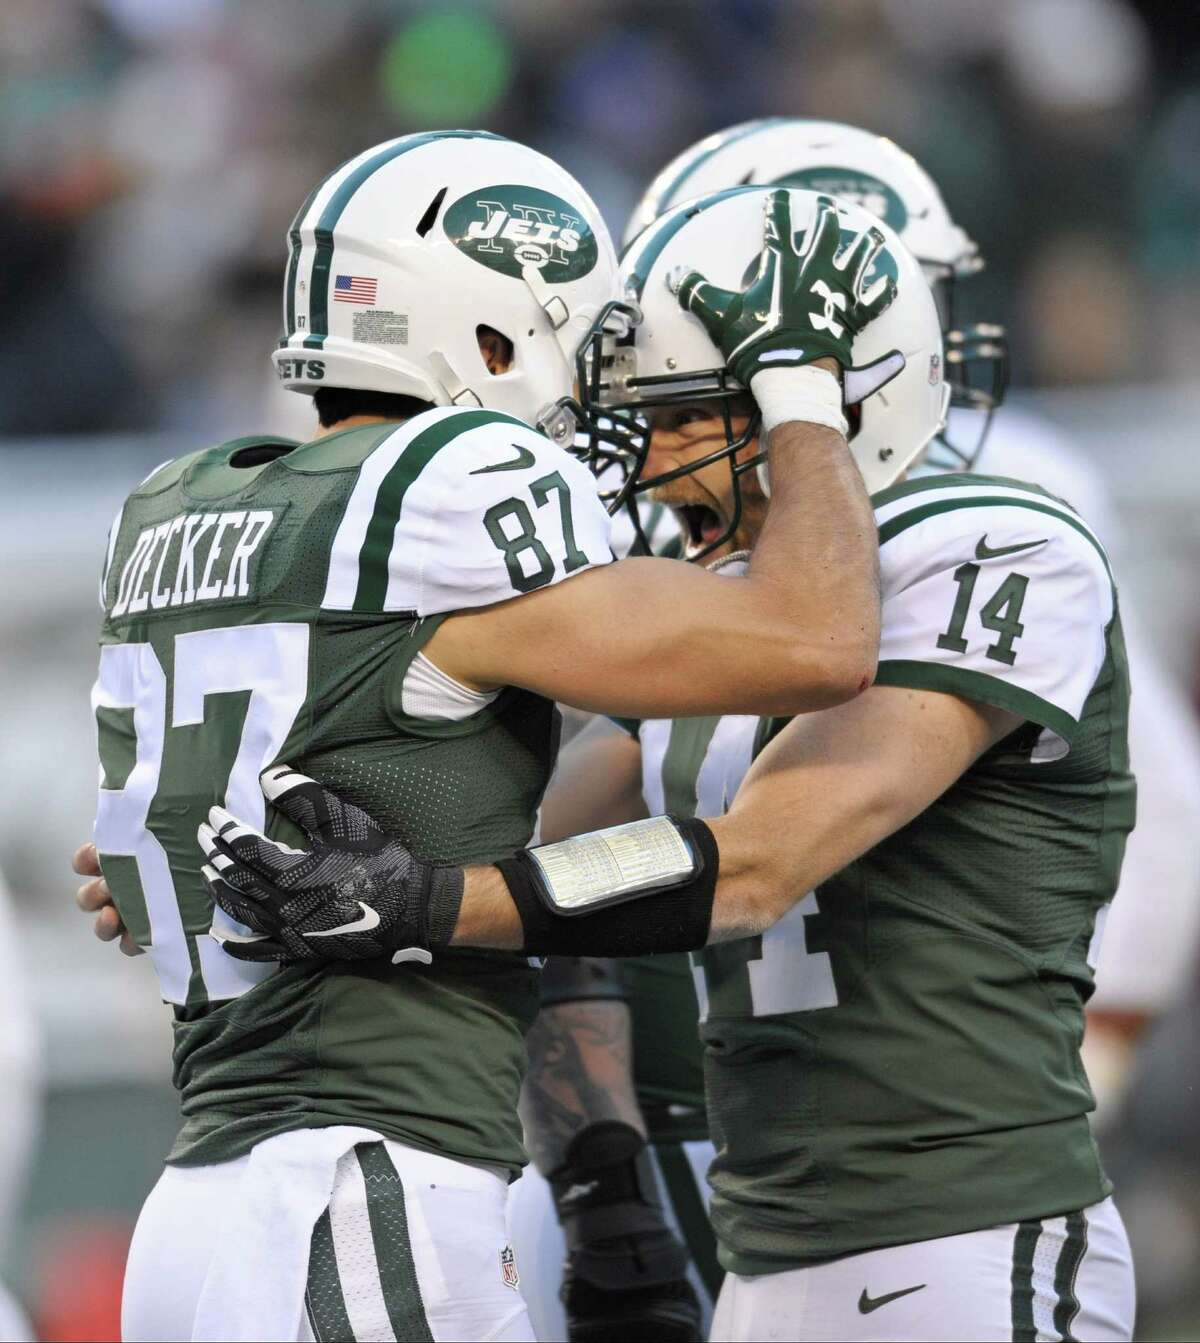 New York Jets quarterback Ryan Fitzpatrick (14) and Eric Decker (87) celebrate after the two connected for a touchdown during the second half of an NFL football game against the Miami Dolphins, Sunday, Nov. 29, 2015, in East Rutherford, N.J. (AP Photo/Bill Kostroun) ORG XMIT: ERU117